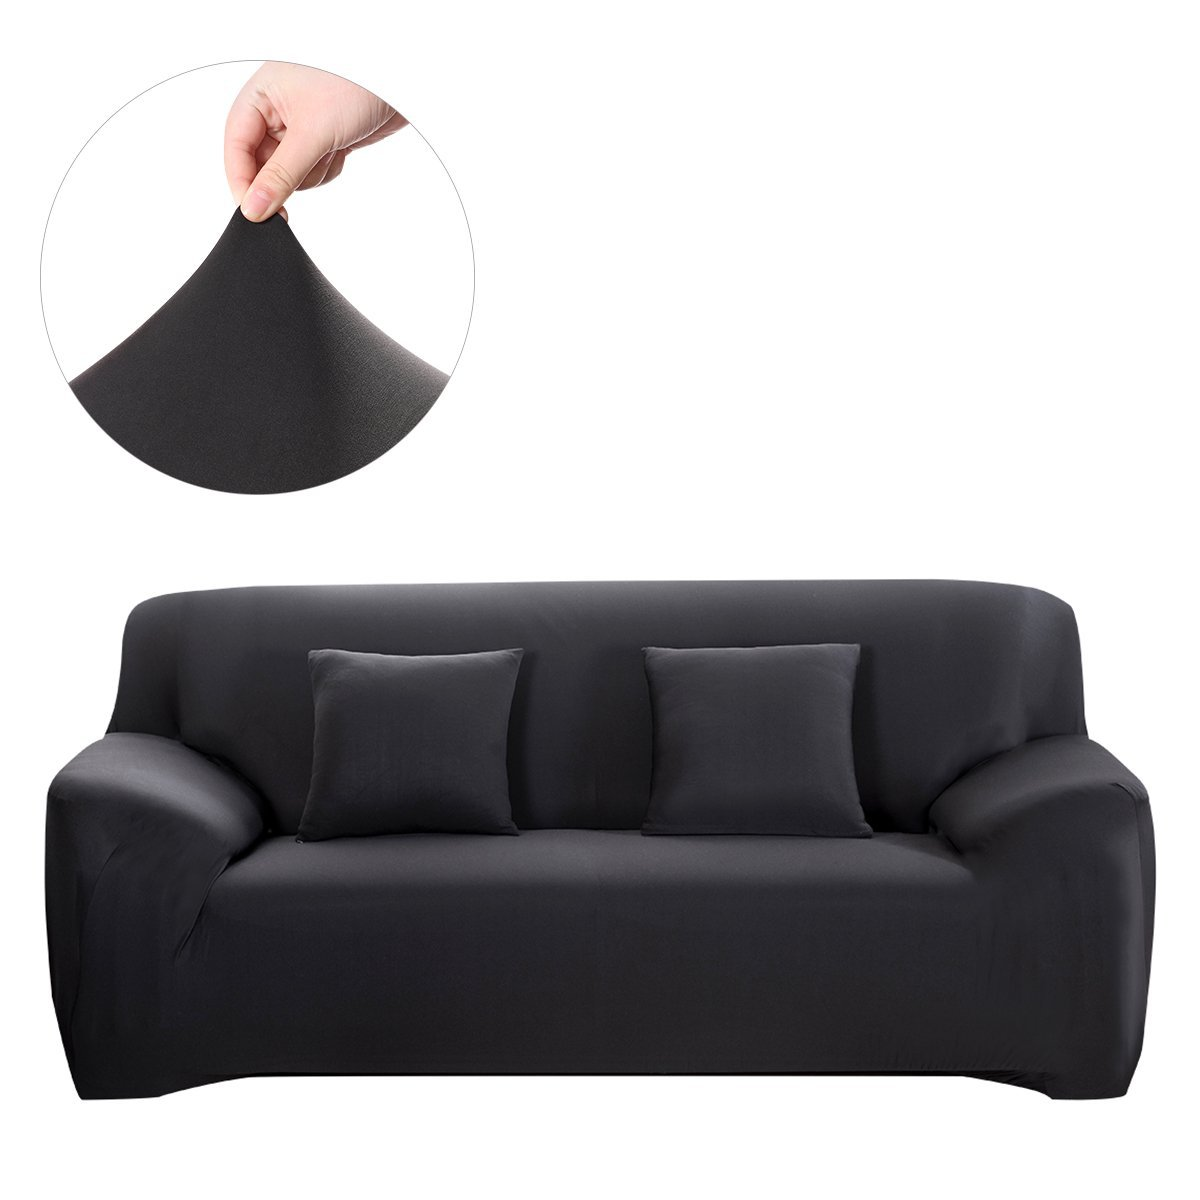 Dilwe Sofa Loveseat Cover Stretch Seat Chair Covers Couch